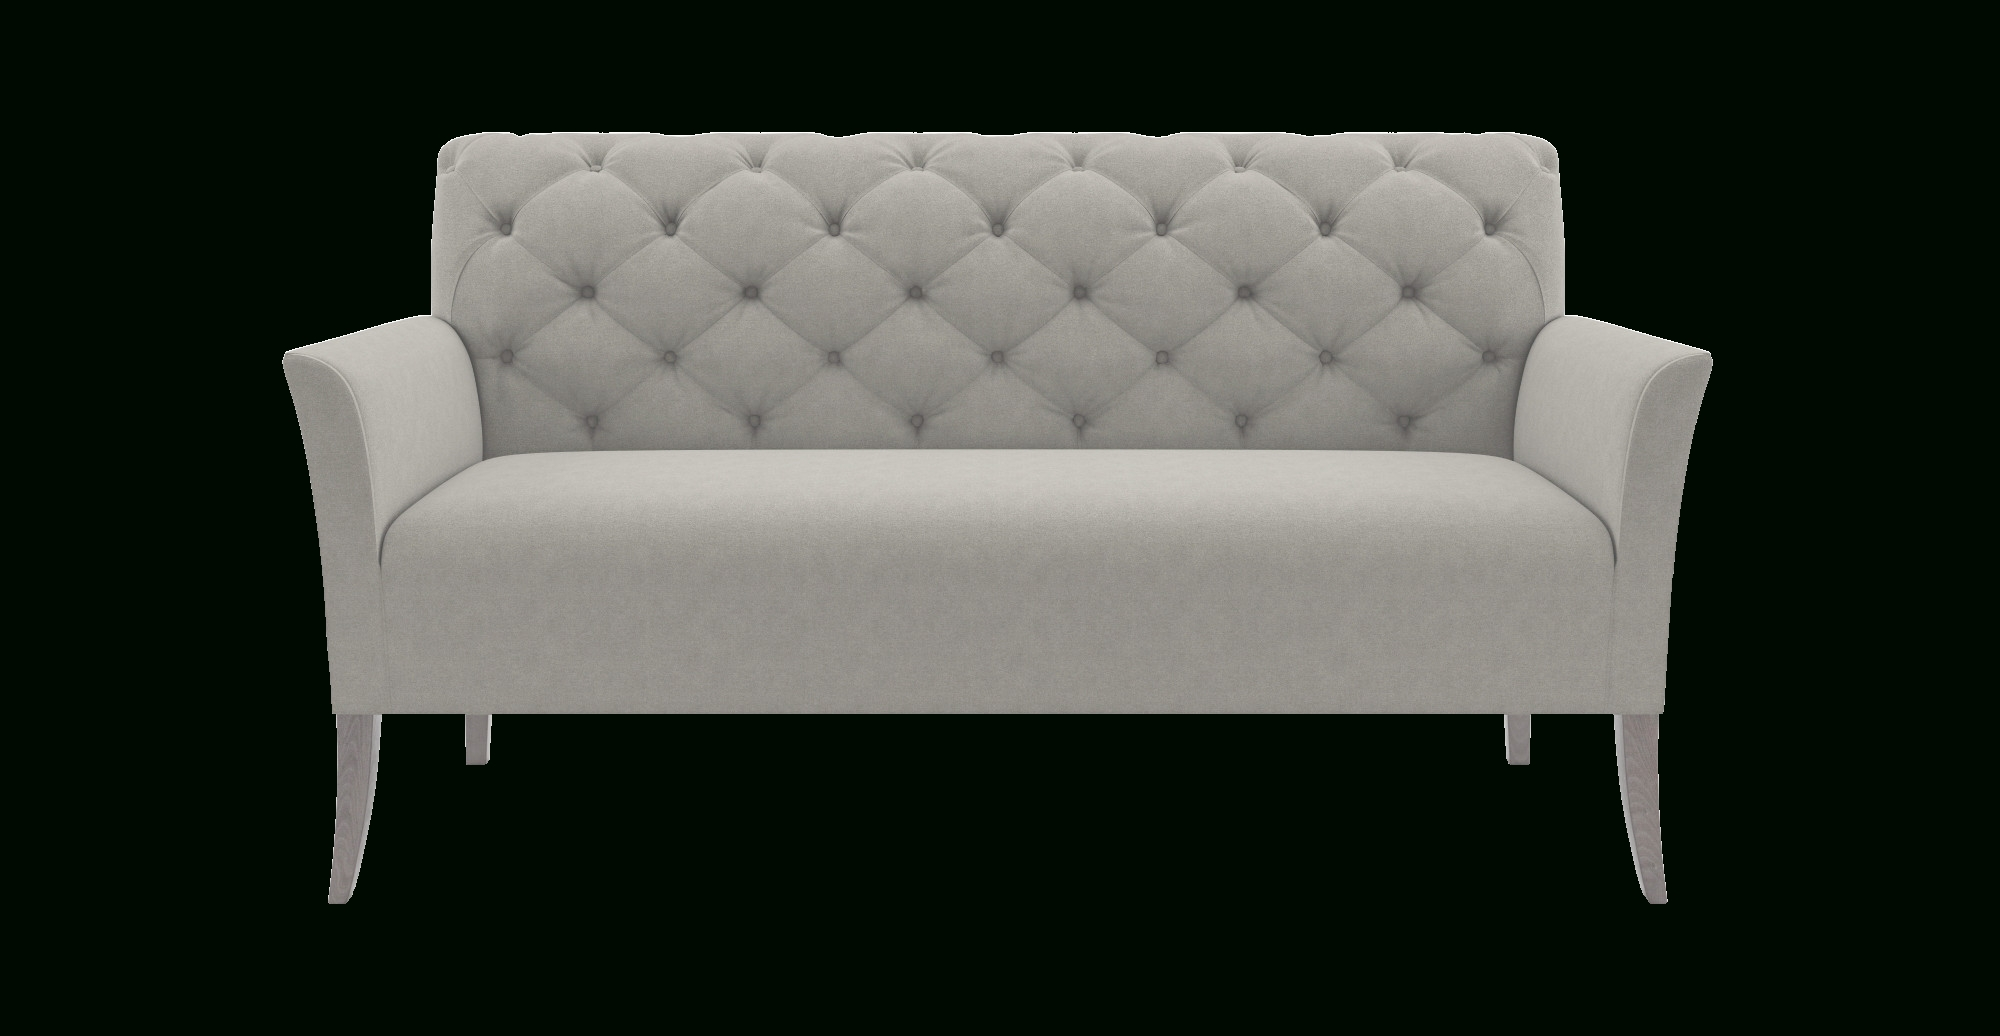 Buy Beaudan 2 Seater Sofa Online - Brosa for Two Seater Chairs (Image 2 of 30)